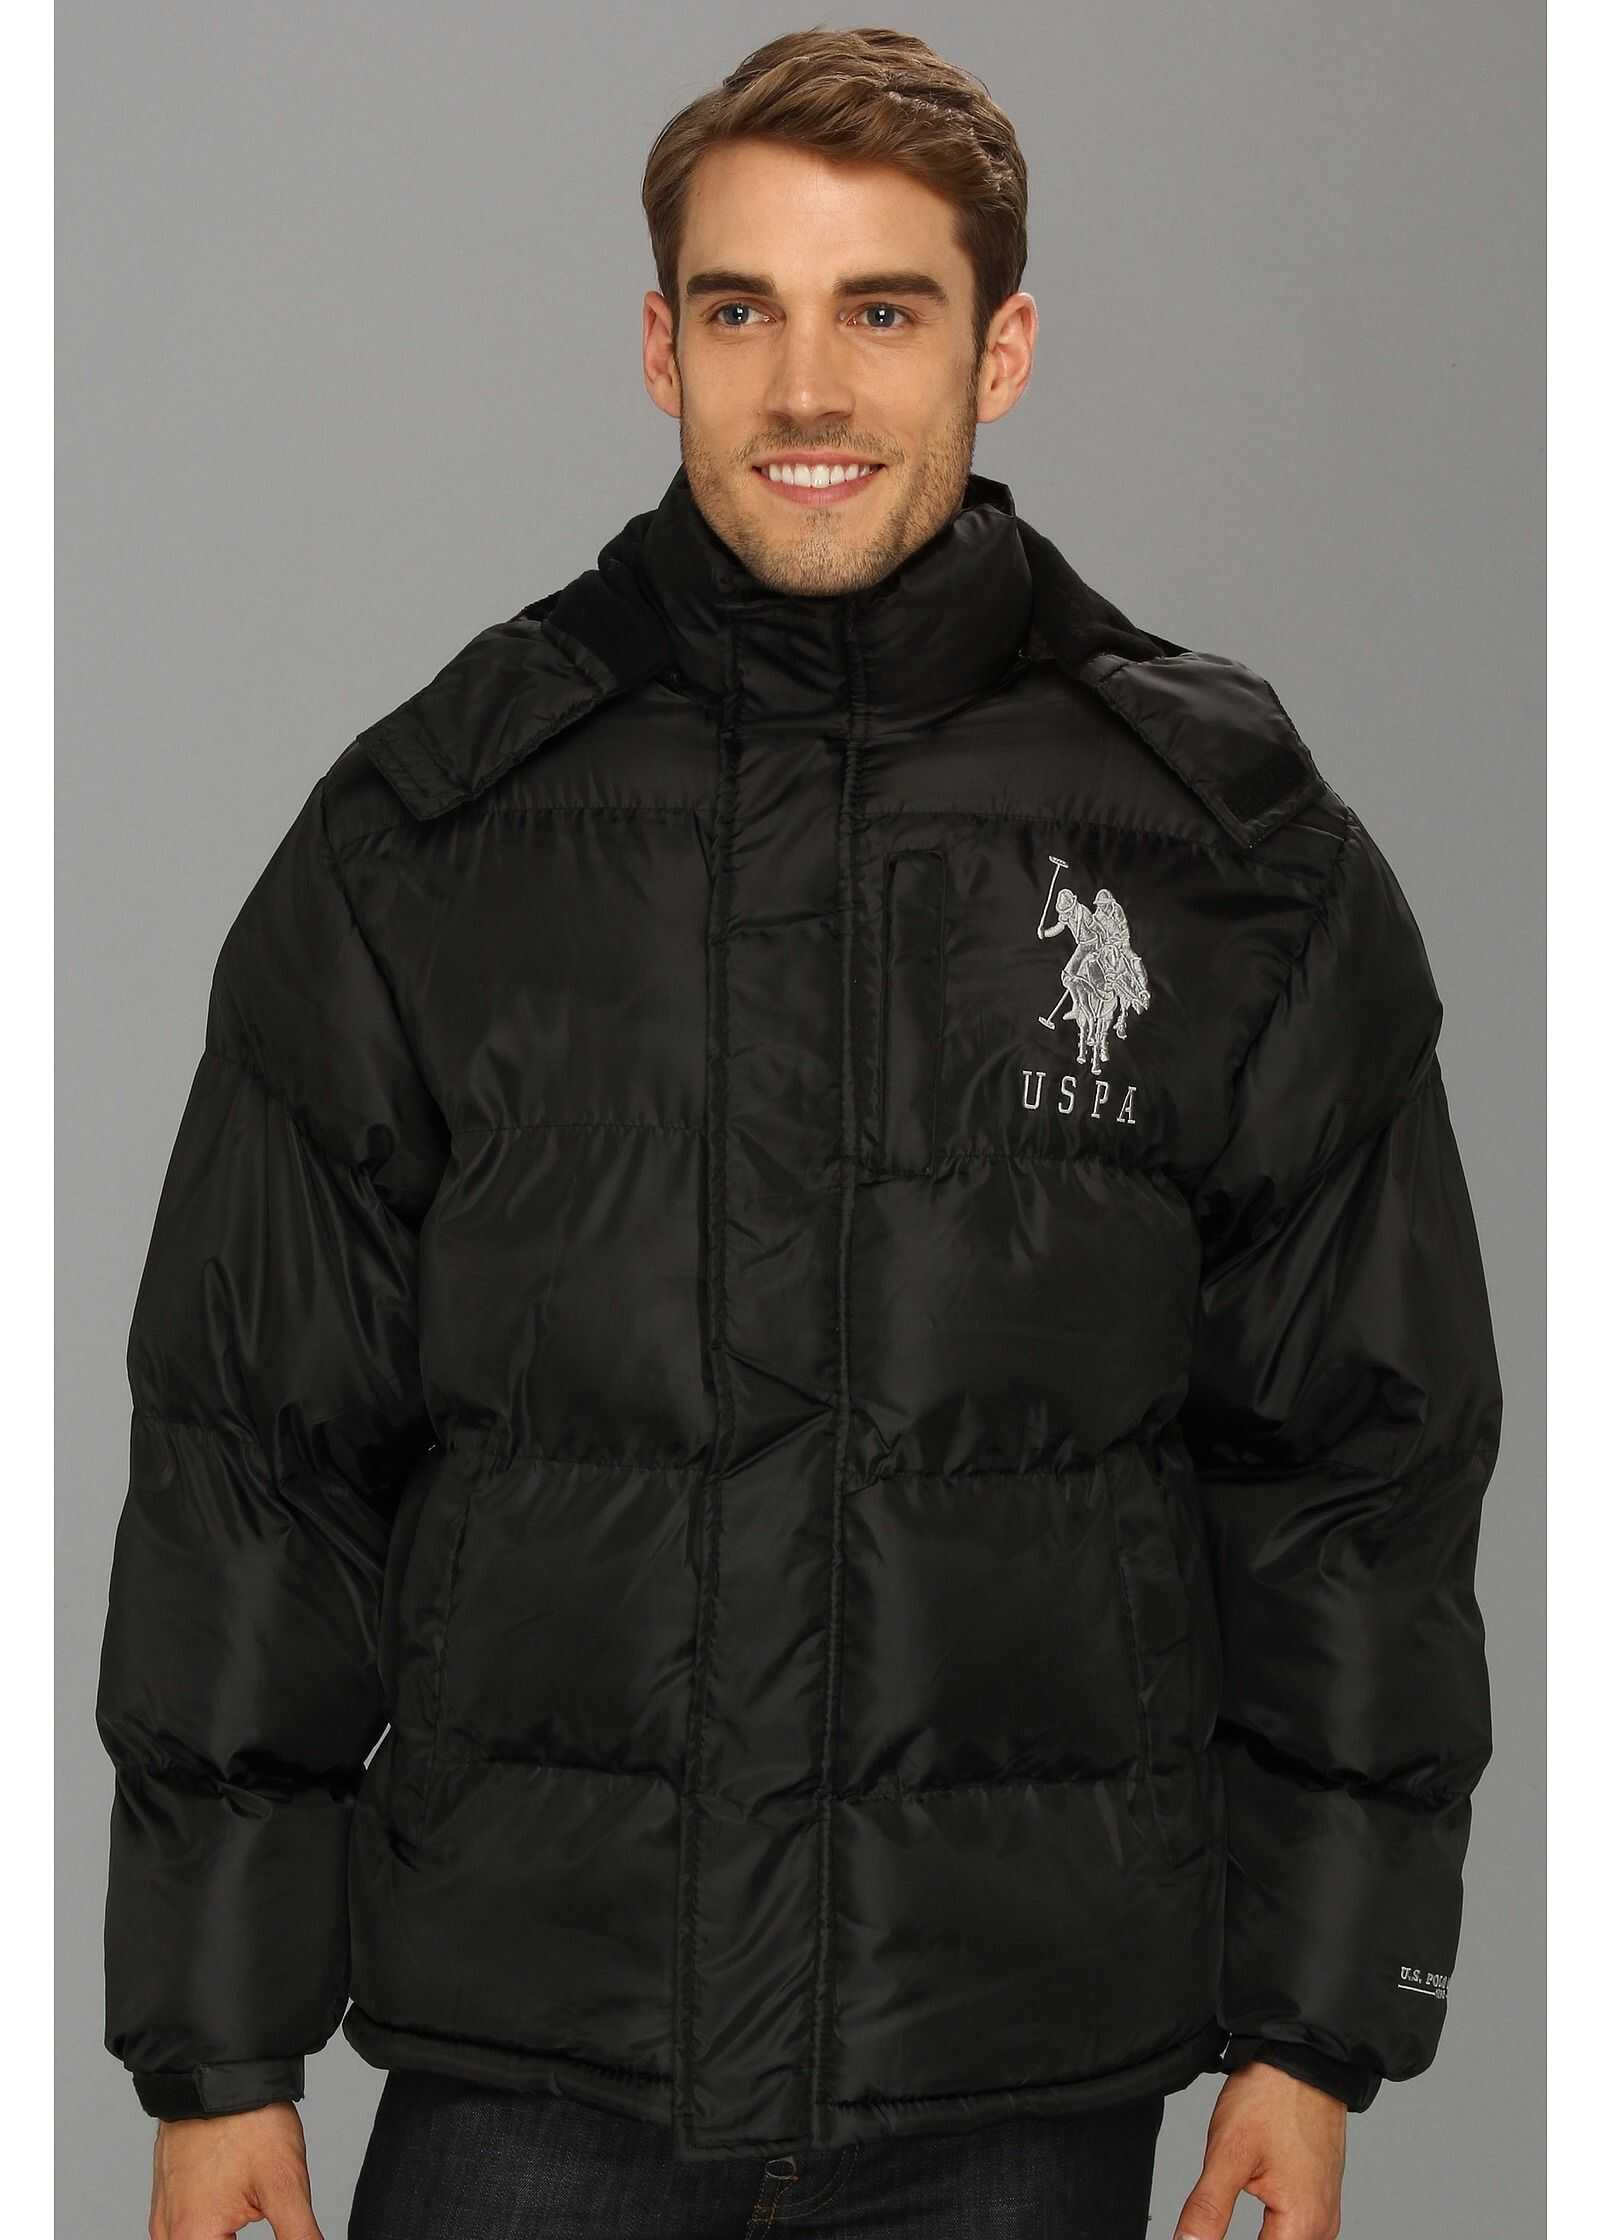 U.S. POLO ASSN. Classic Short Bubble Coat w/ Big Pony Black